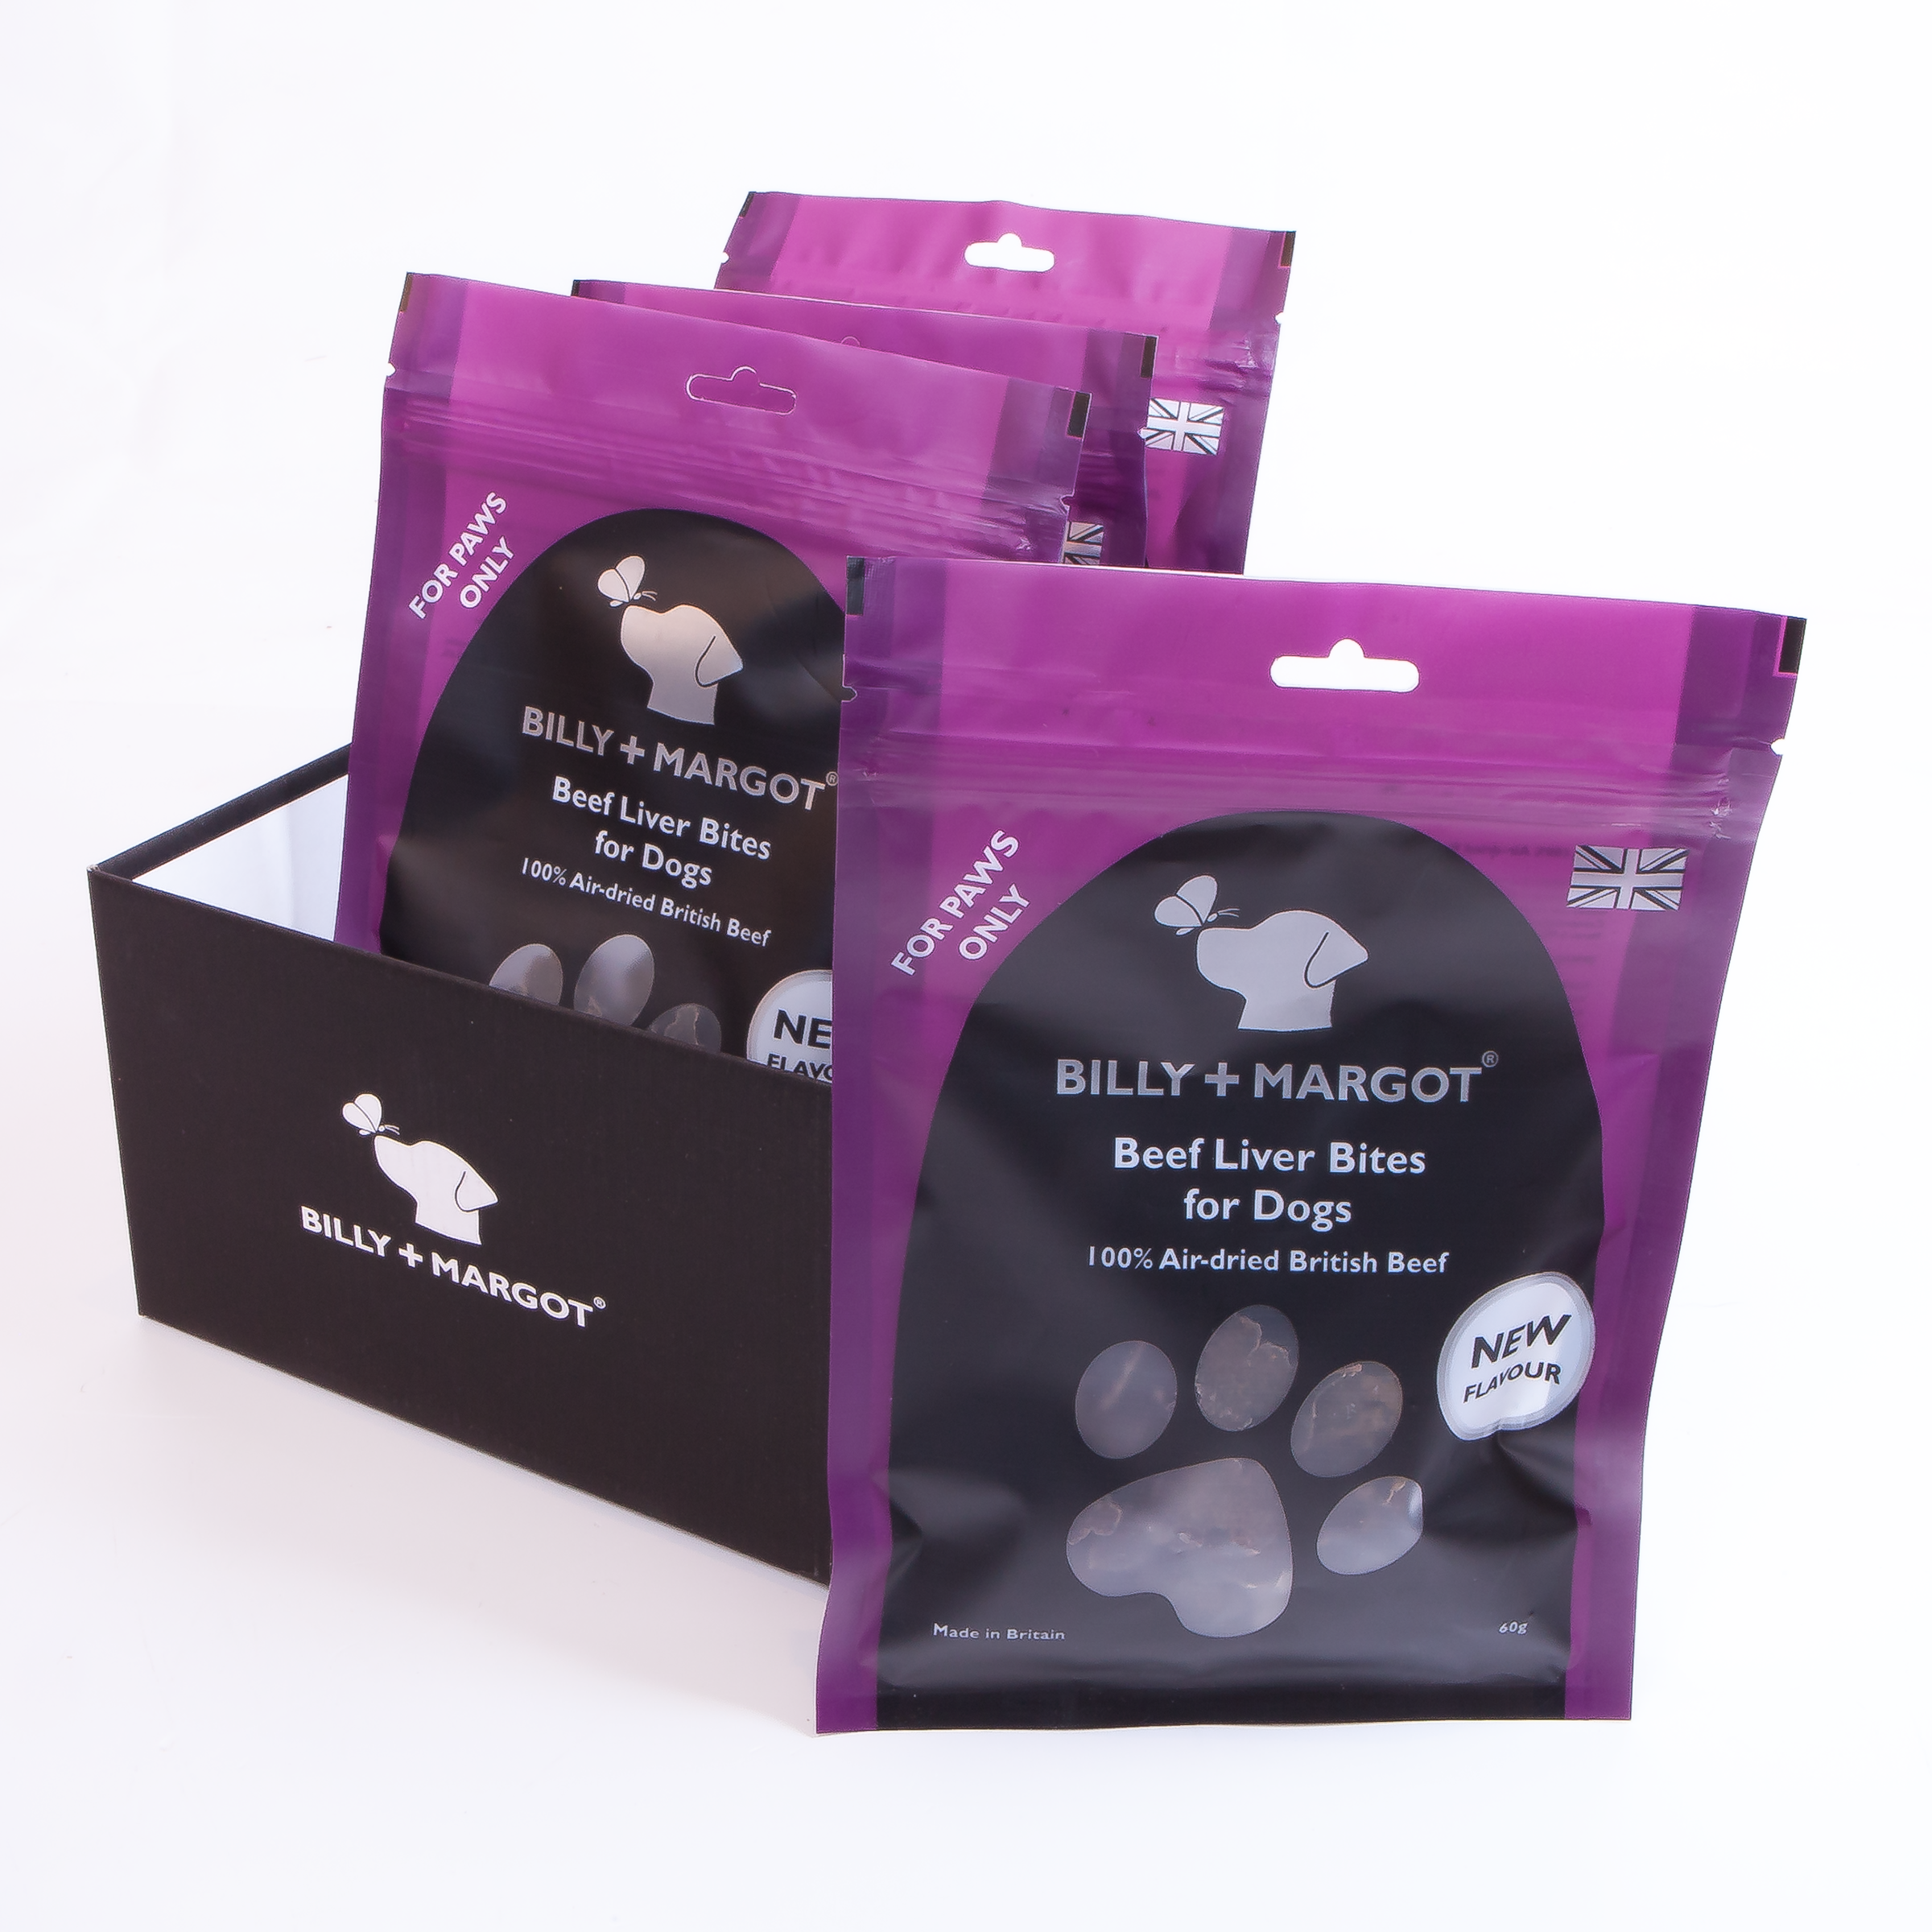 Billy & Margot Beef Liver Bites Dog Treats 60g x 4 Multipack